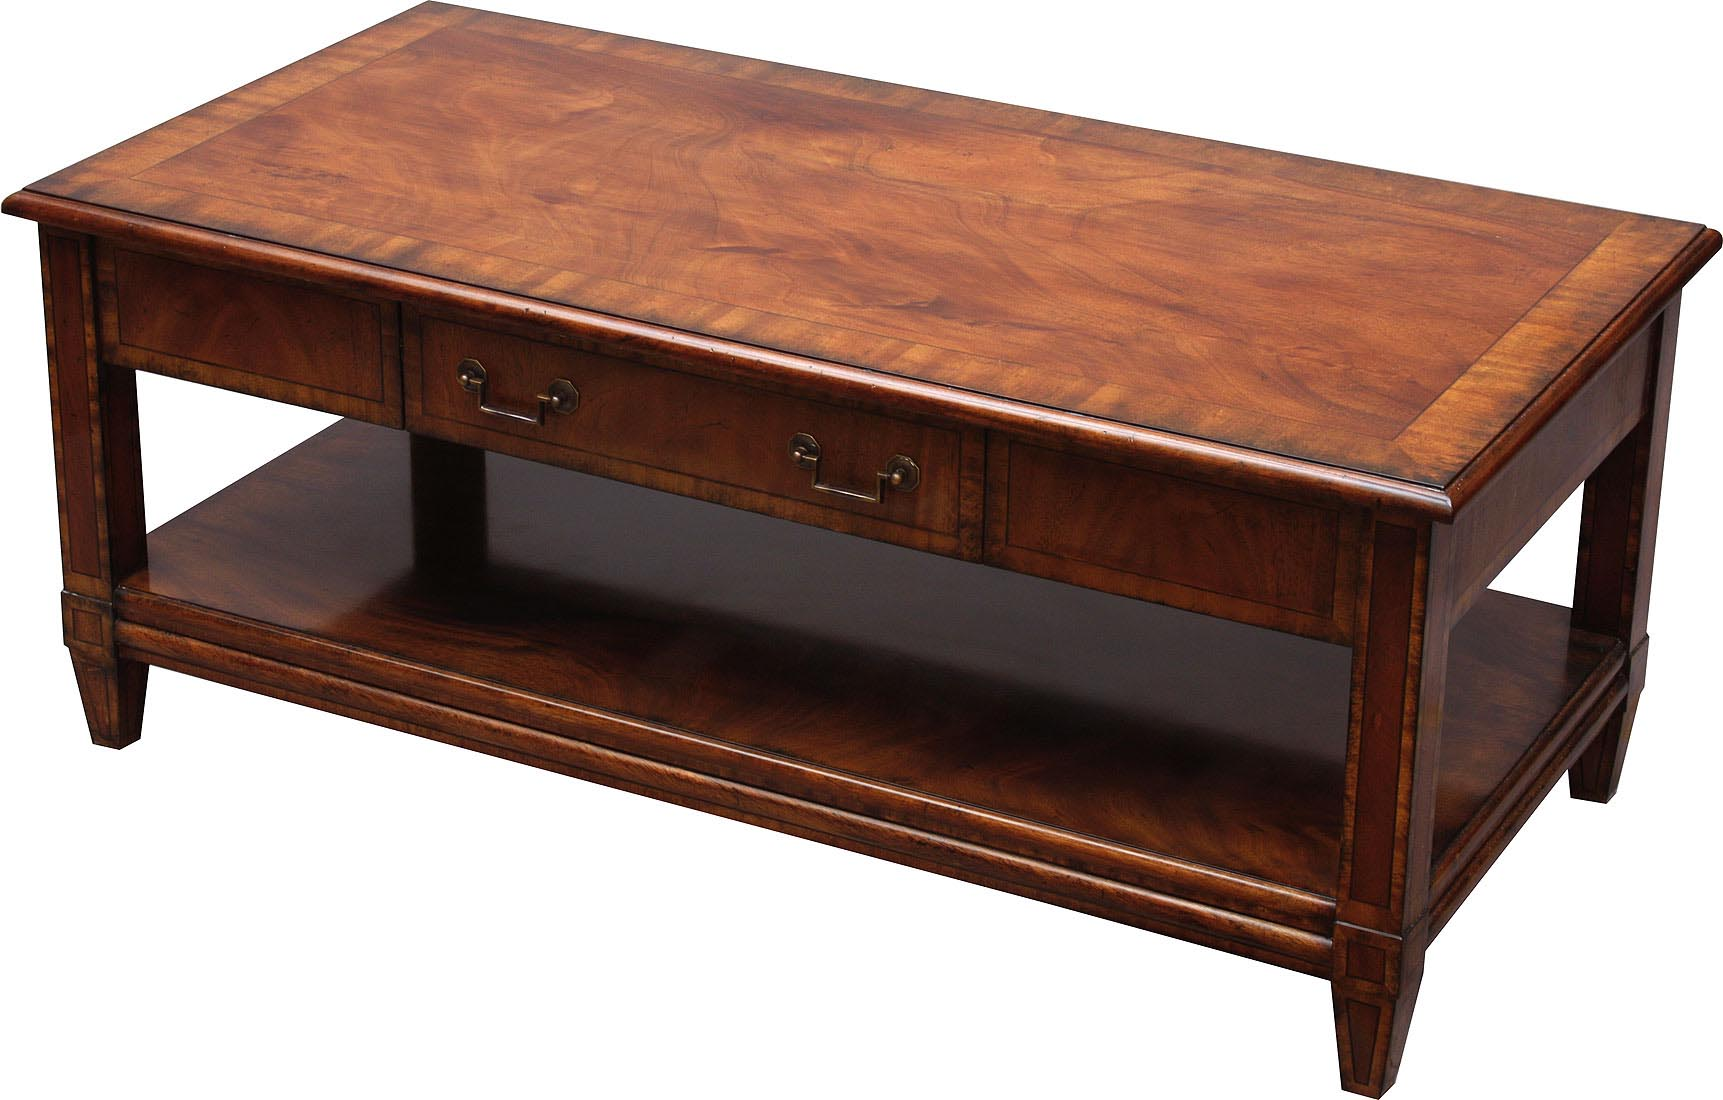 Mahogany Coffee Table Antique Coffee Table Design Ideas